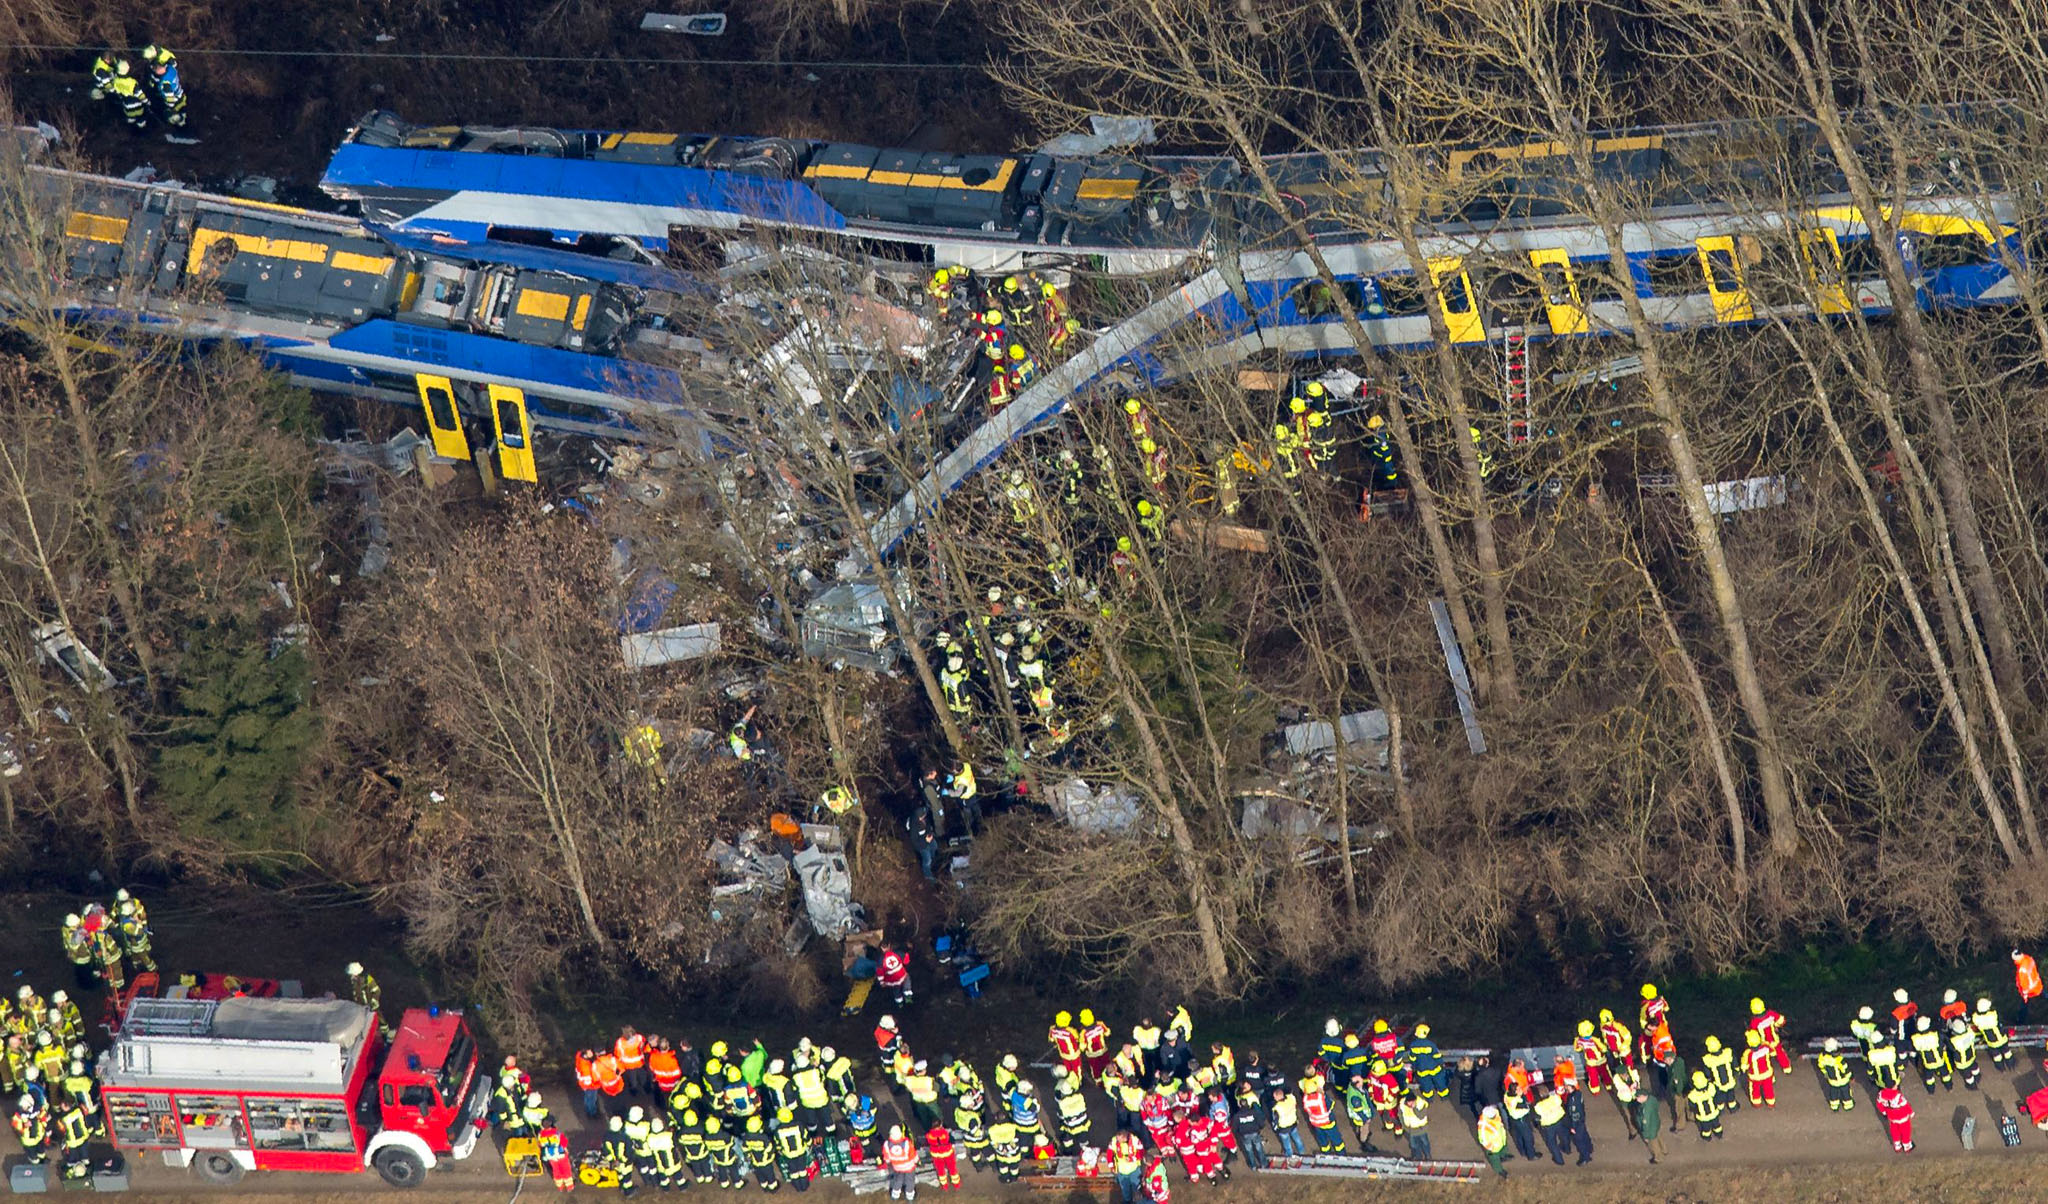 ALTERNATIVE CROP - Firefighters and emer...ALTERNATIVE CROP - Firefighters and emergency doctors work at the site of a train accident near Bad Aibling, southern Germany, on February 9, 2016. Two Meridian commuter trains operated by Transdev collided head-on near Bad Aibling, around 60 kilometres (40 miles) southeast of Munich, killing at least eight people and injuring around 100, police said. The cause of the accident was not immediately clear. / AFP / dpa / Peter Kneffel / Germany OUTPETER KNEFFEL/AFP/Getty Images